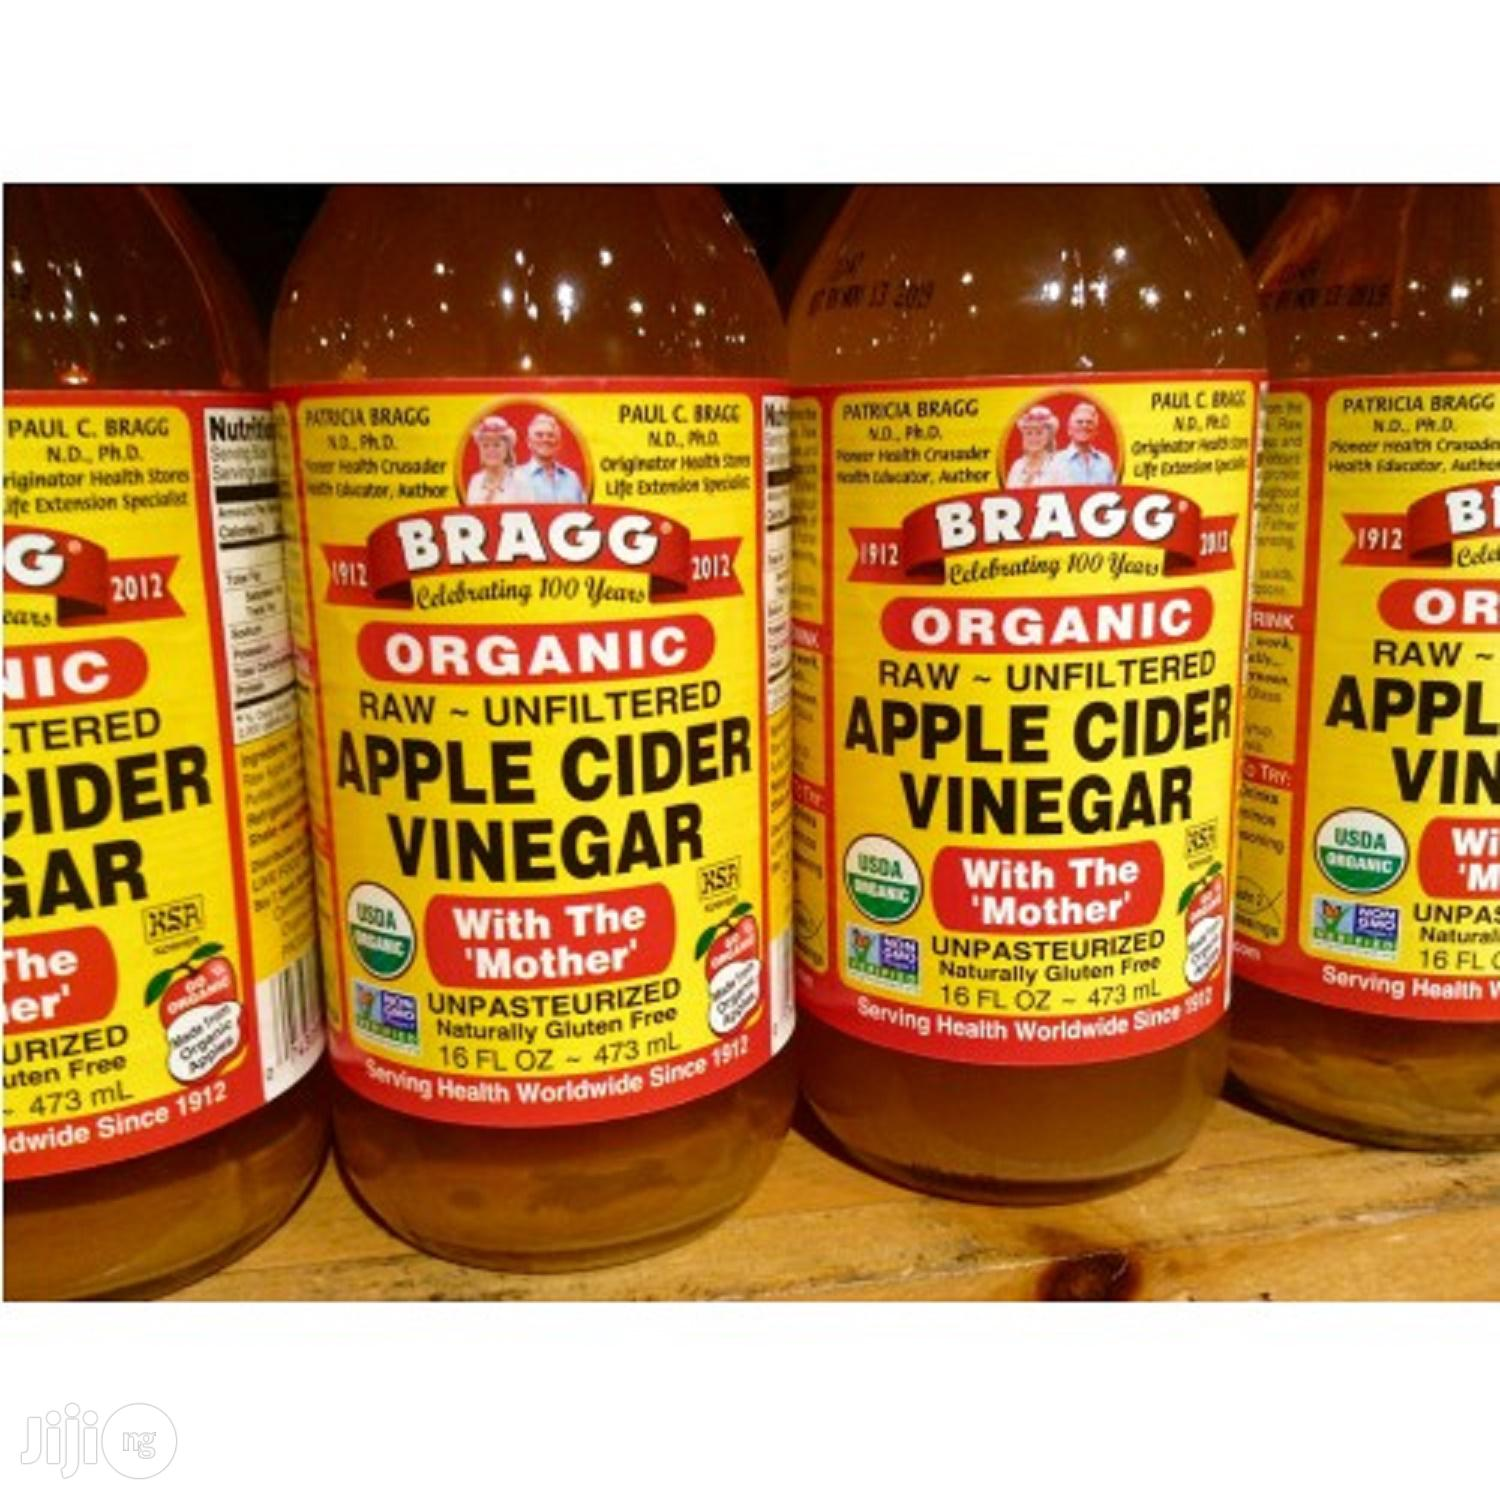 Bragg Organic Apple Cider Vinegar (Raw/Unfiltered) With 'the Mother' - 946ml, 32oz, 1litre